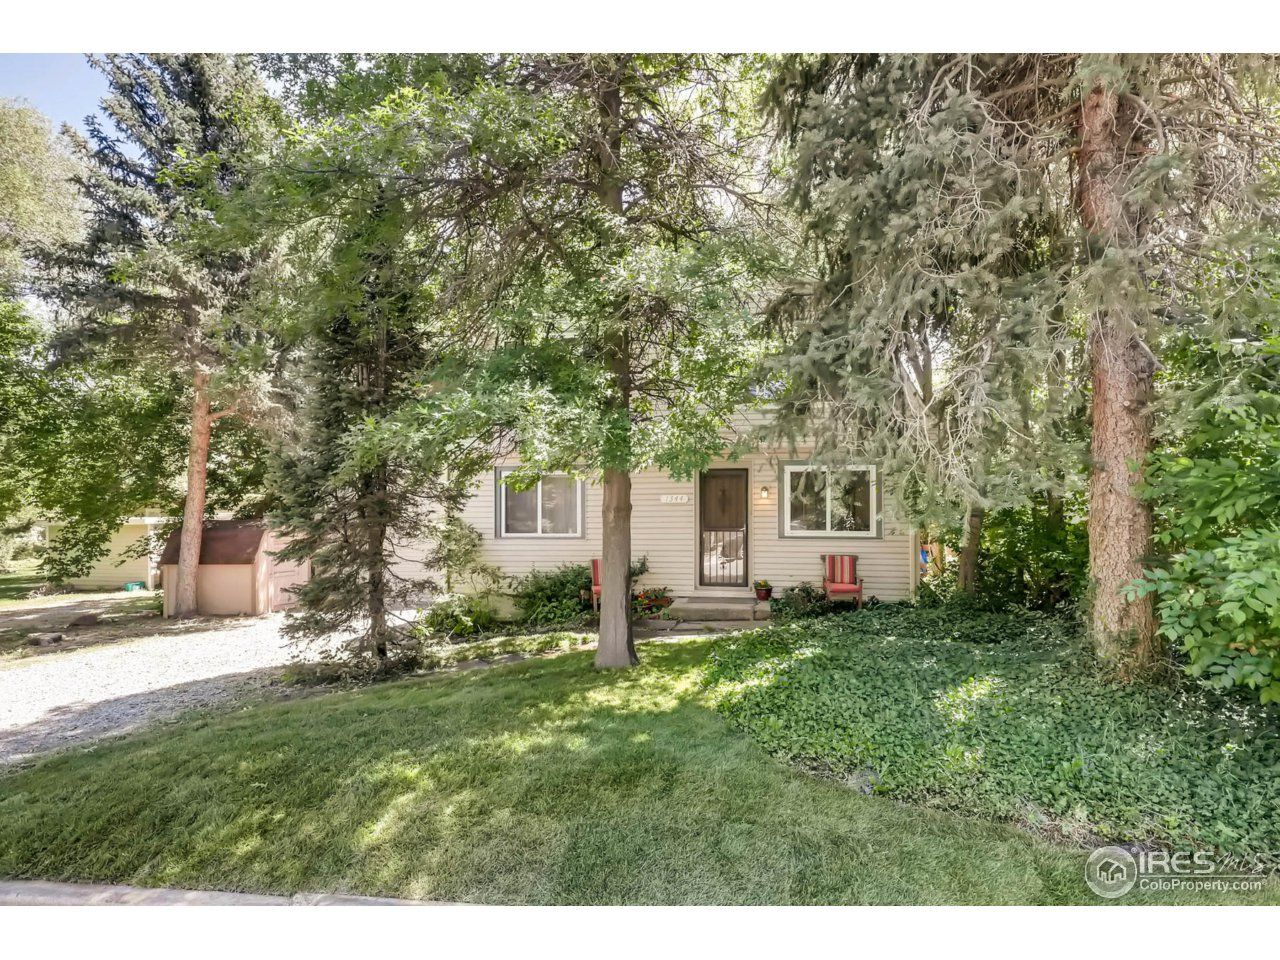 1344 6th St, Boulder CO 80302